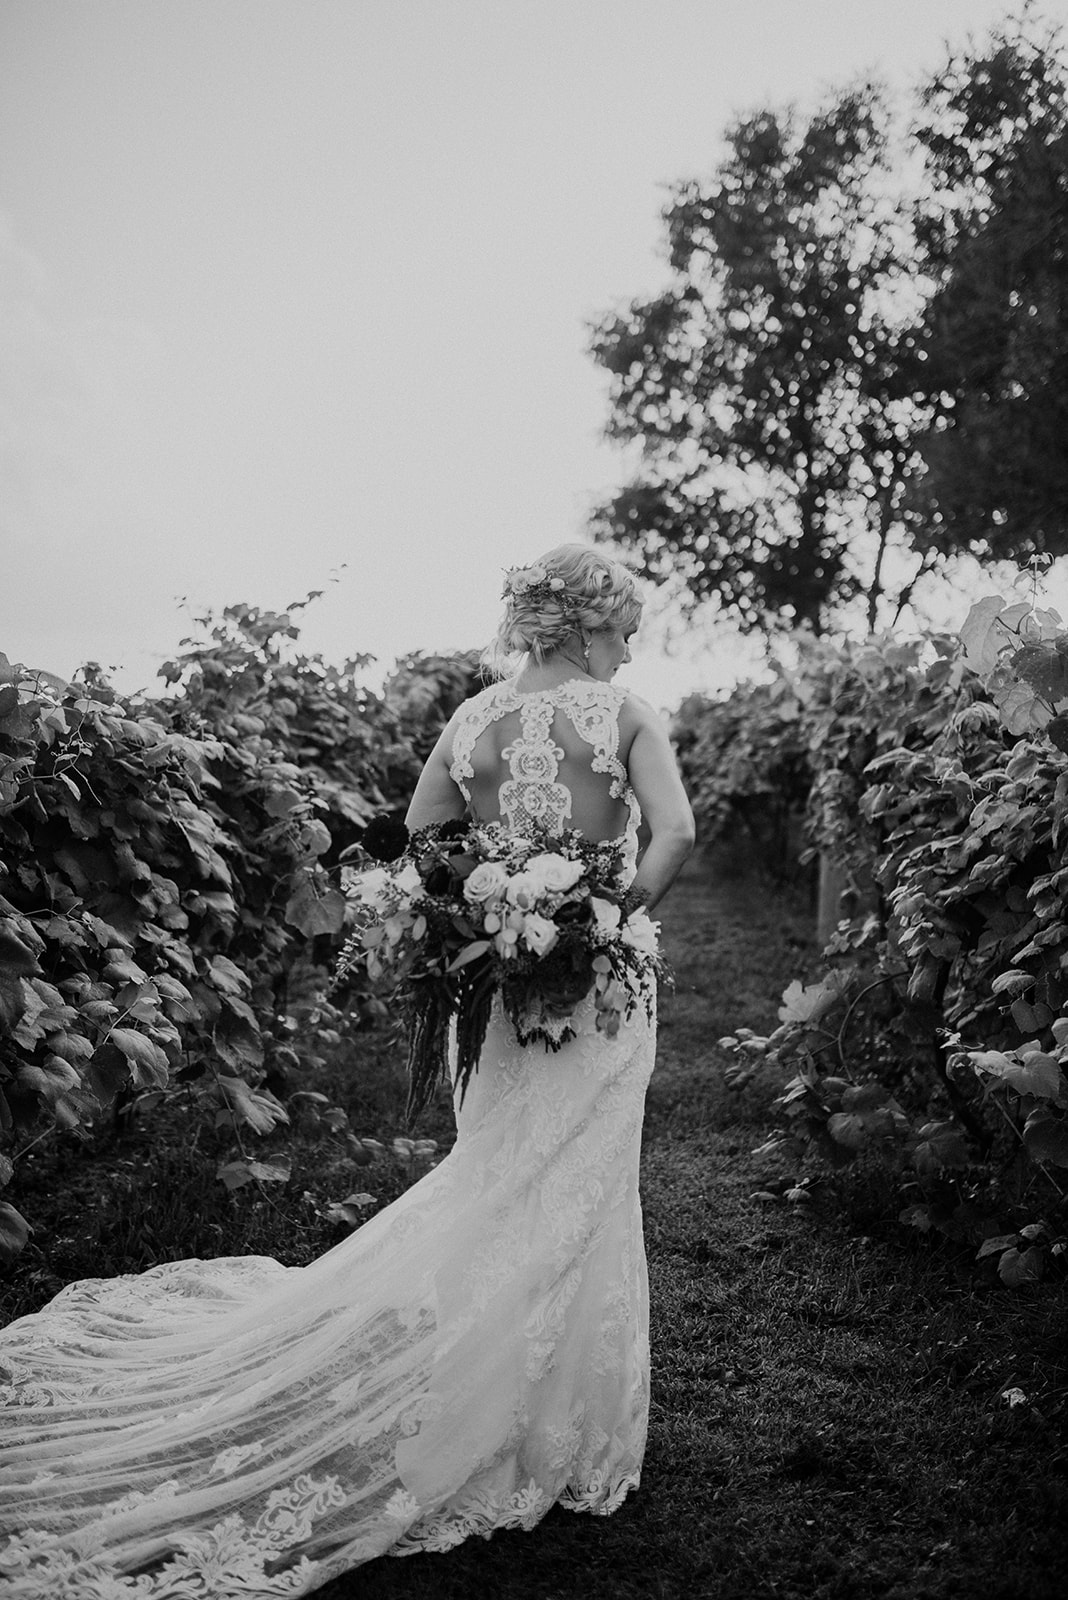 overthevineswisconsinwedding_0917.jpg